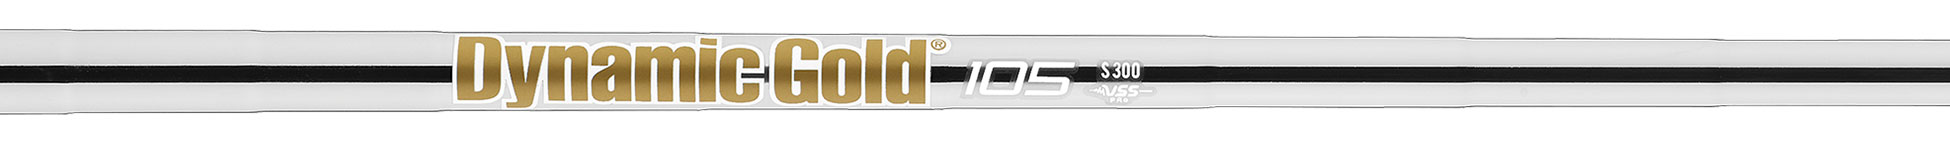 True Temper Dynamic Gold 105 VSS